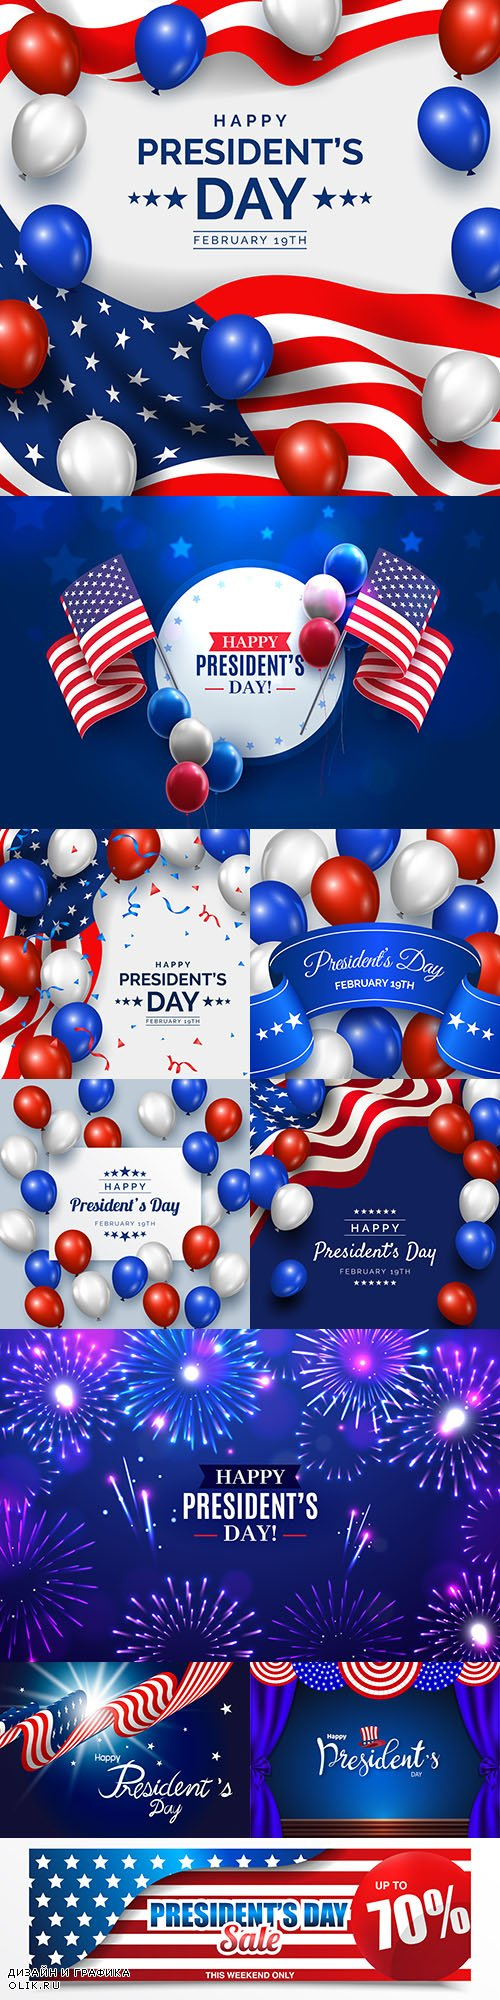 Presidential day with balloons realistic illustrations